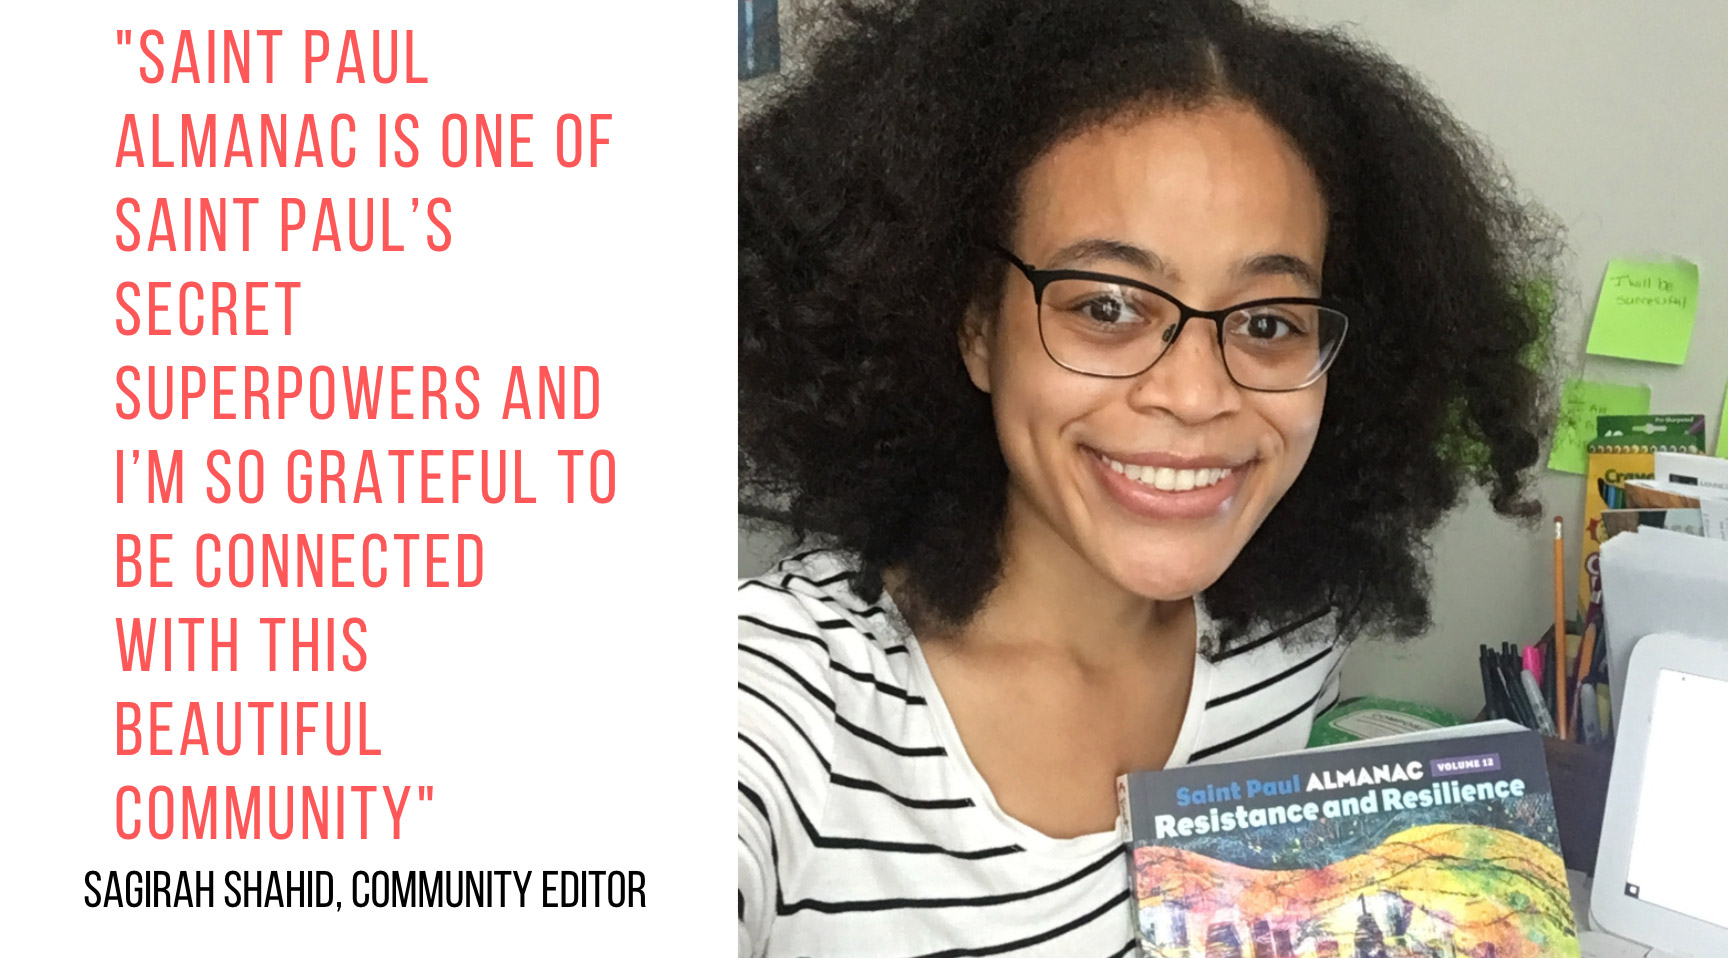 Saint Paul Almanac is one of Saint Paul's secret superpowers and I'm so grateful to be connected with this beautiful community. Sagirah Shahid, community editor